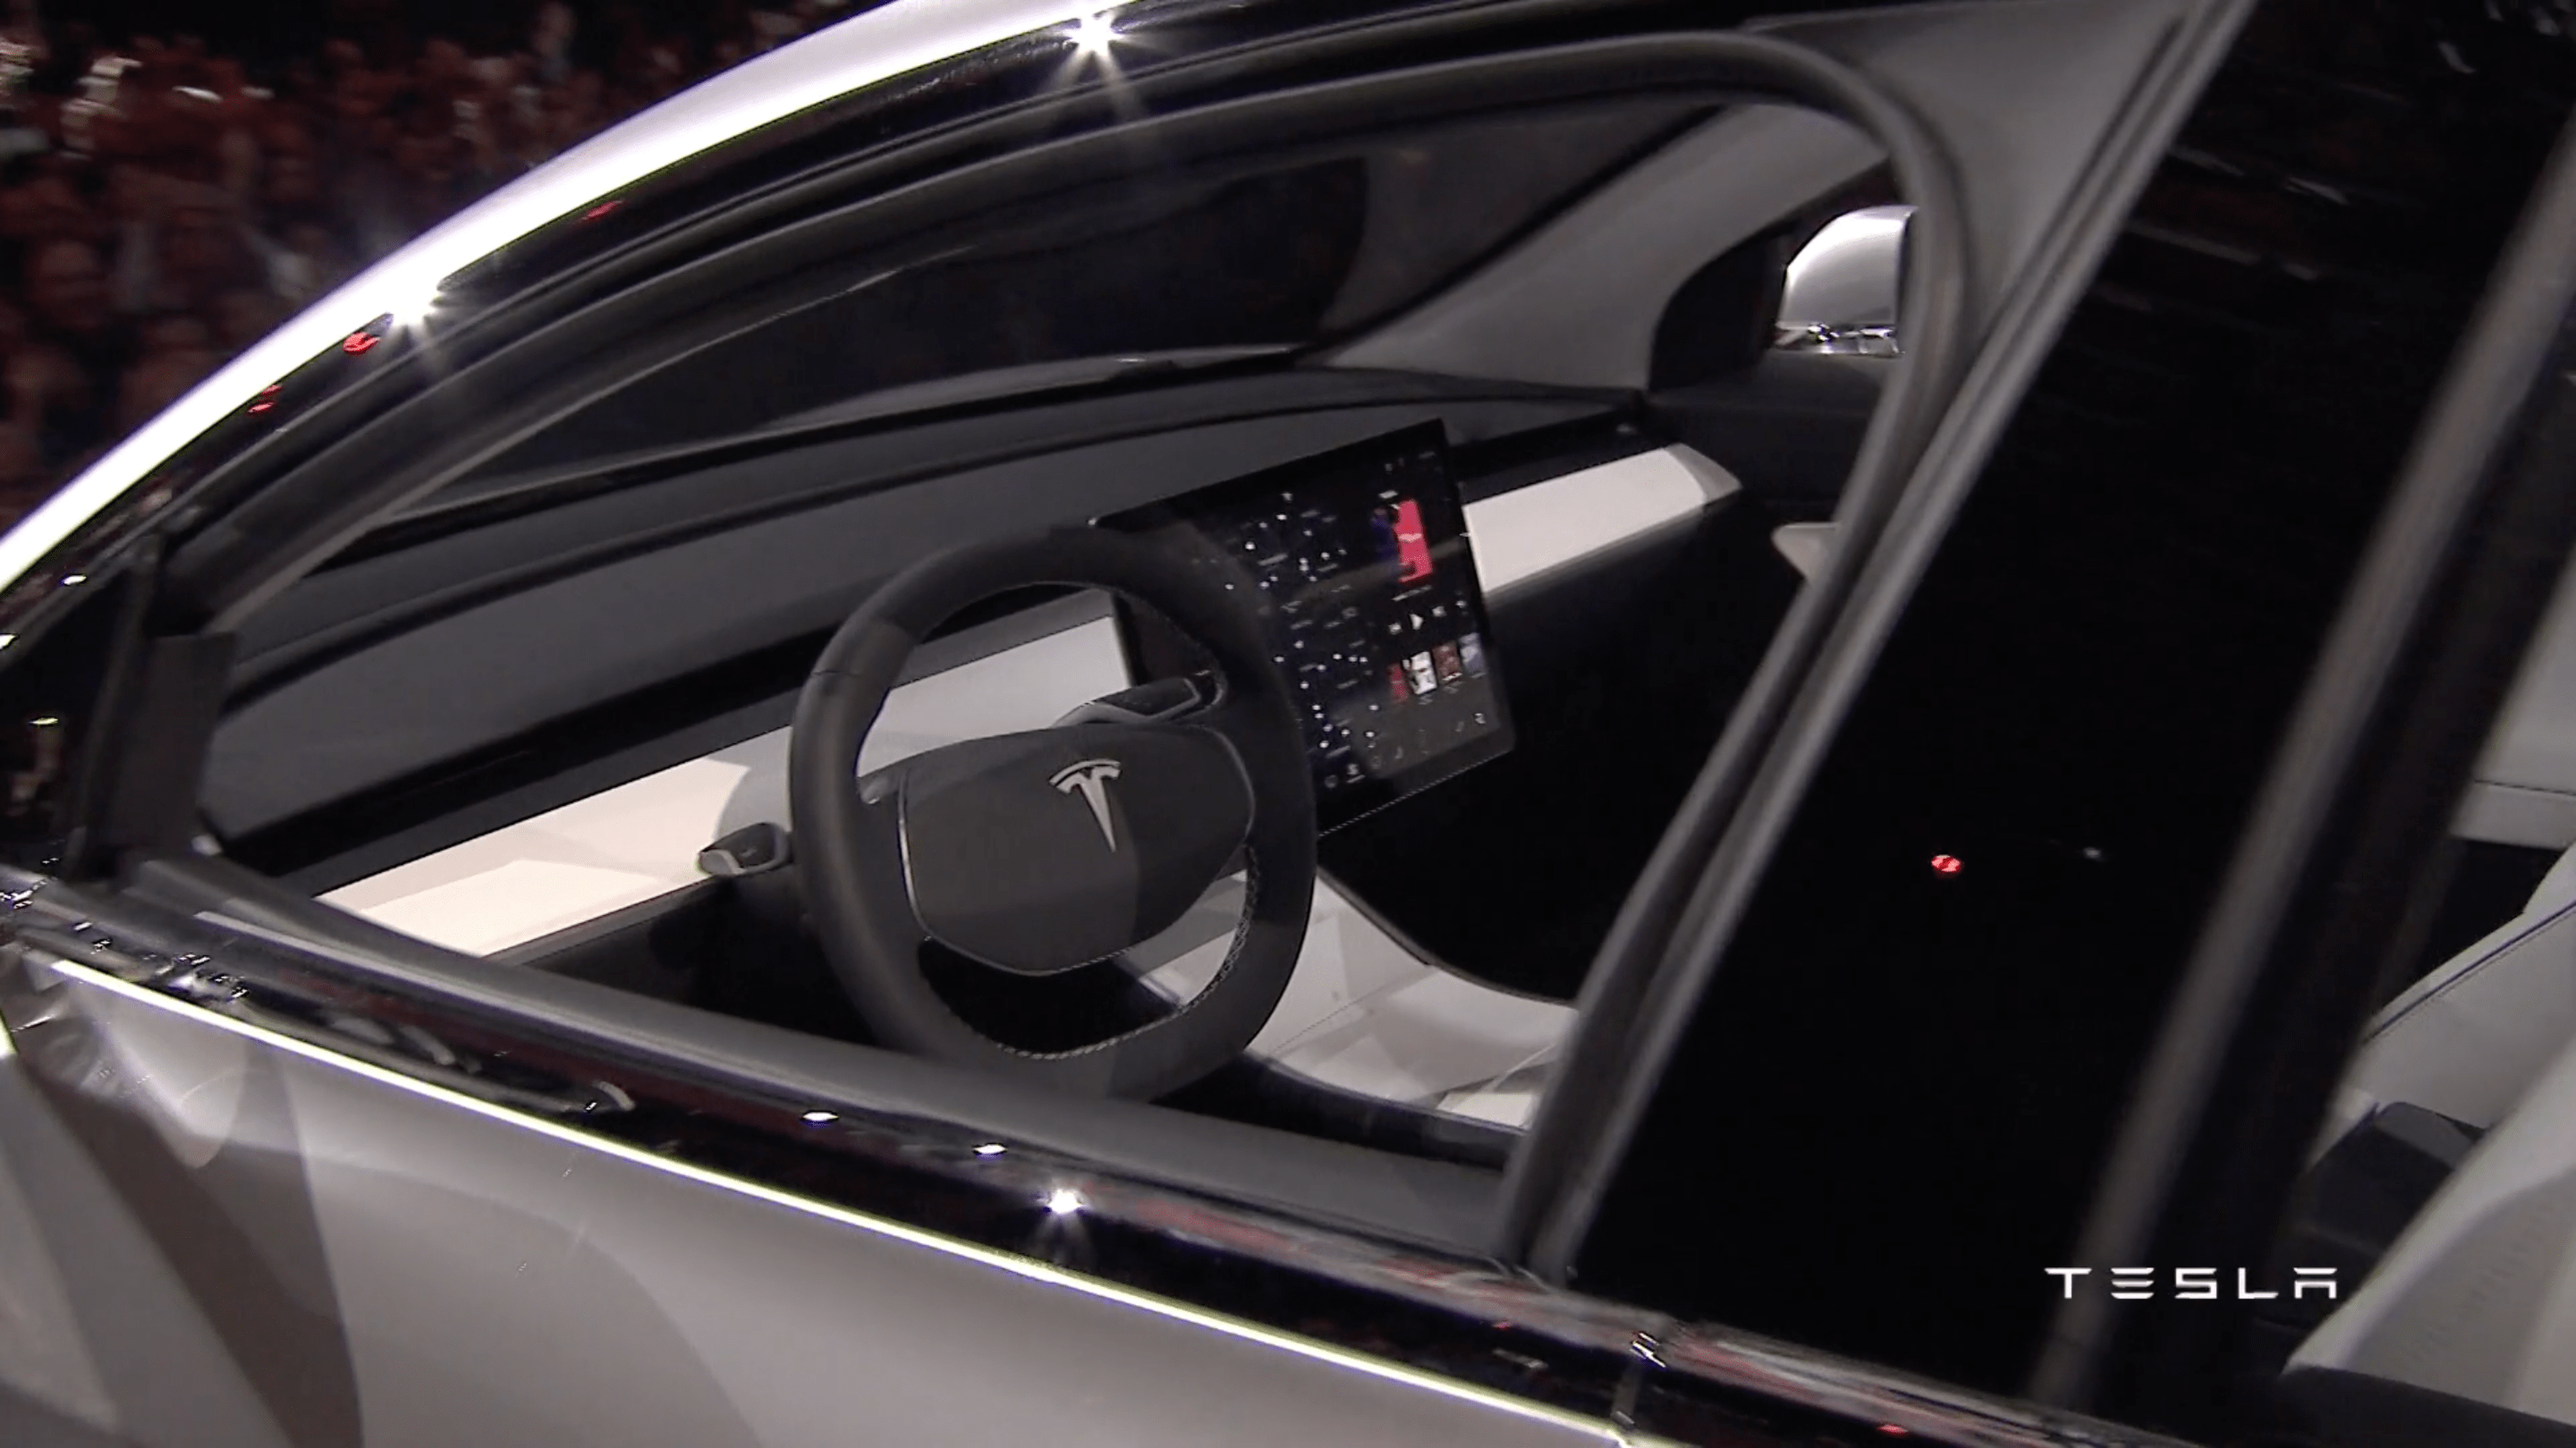 8. The Model 3 comes with a 15-inch touchscreen display that provides information, entertainment, and navigation.